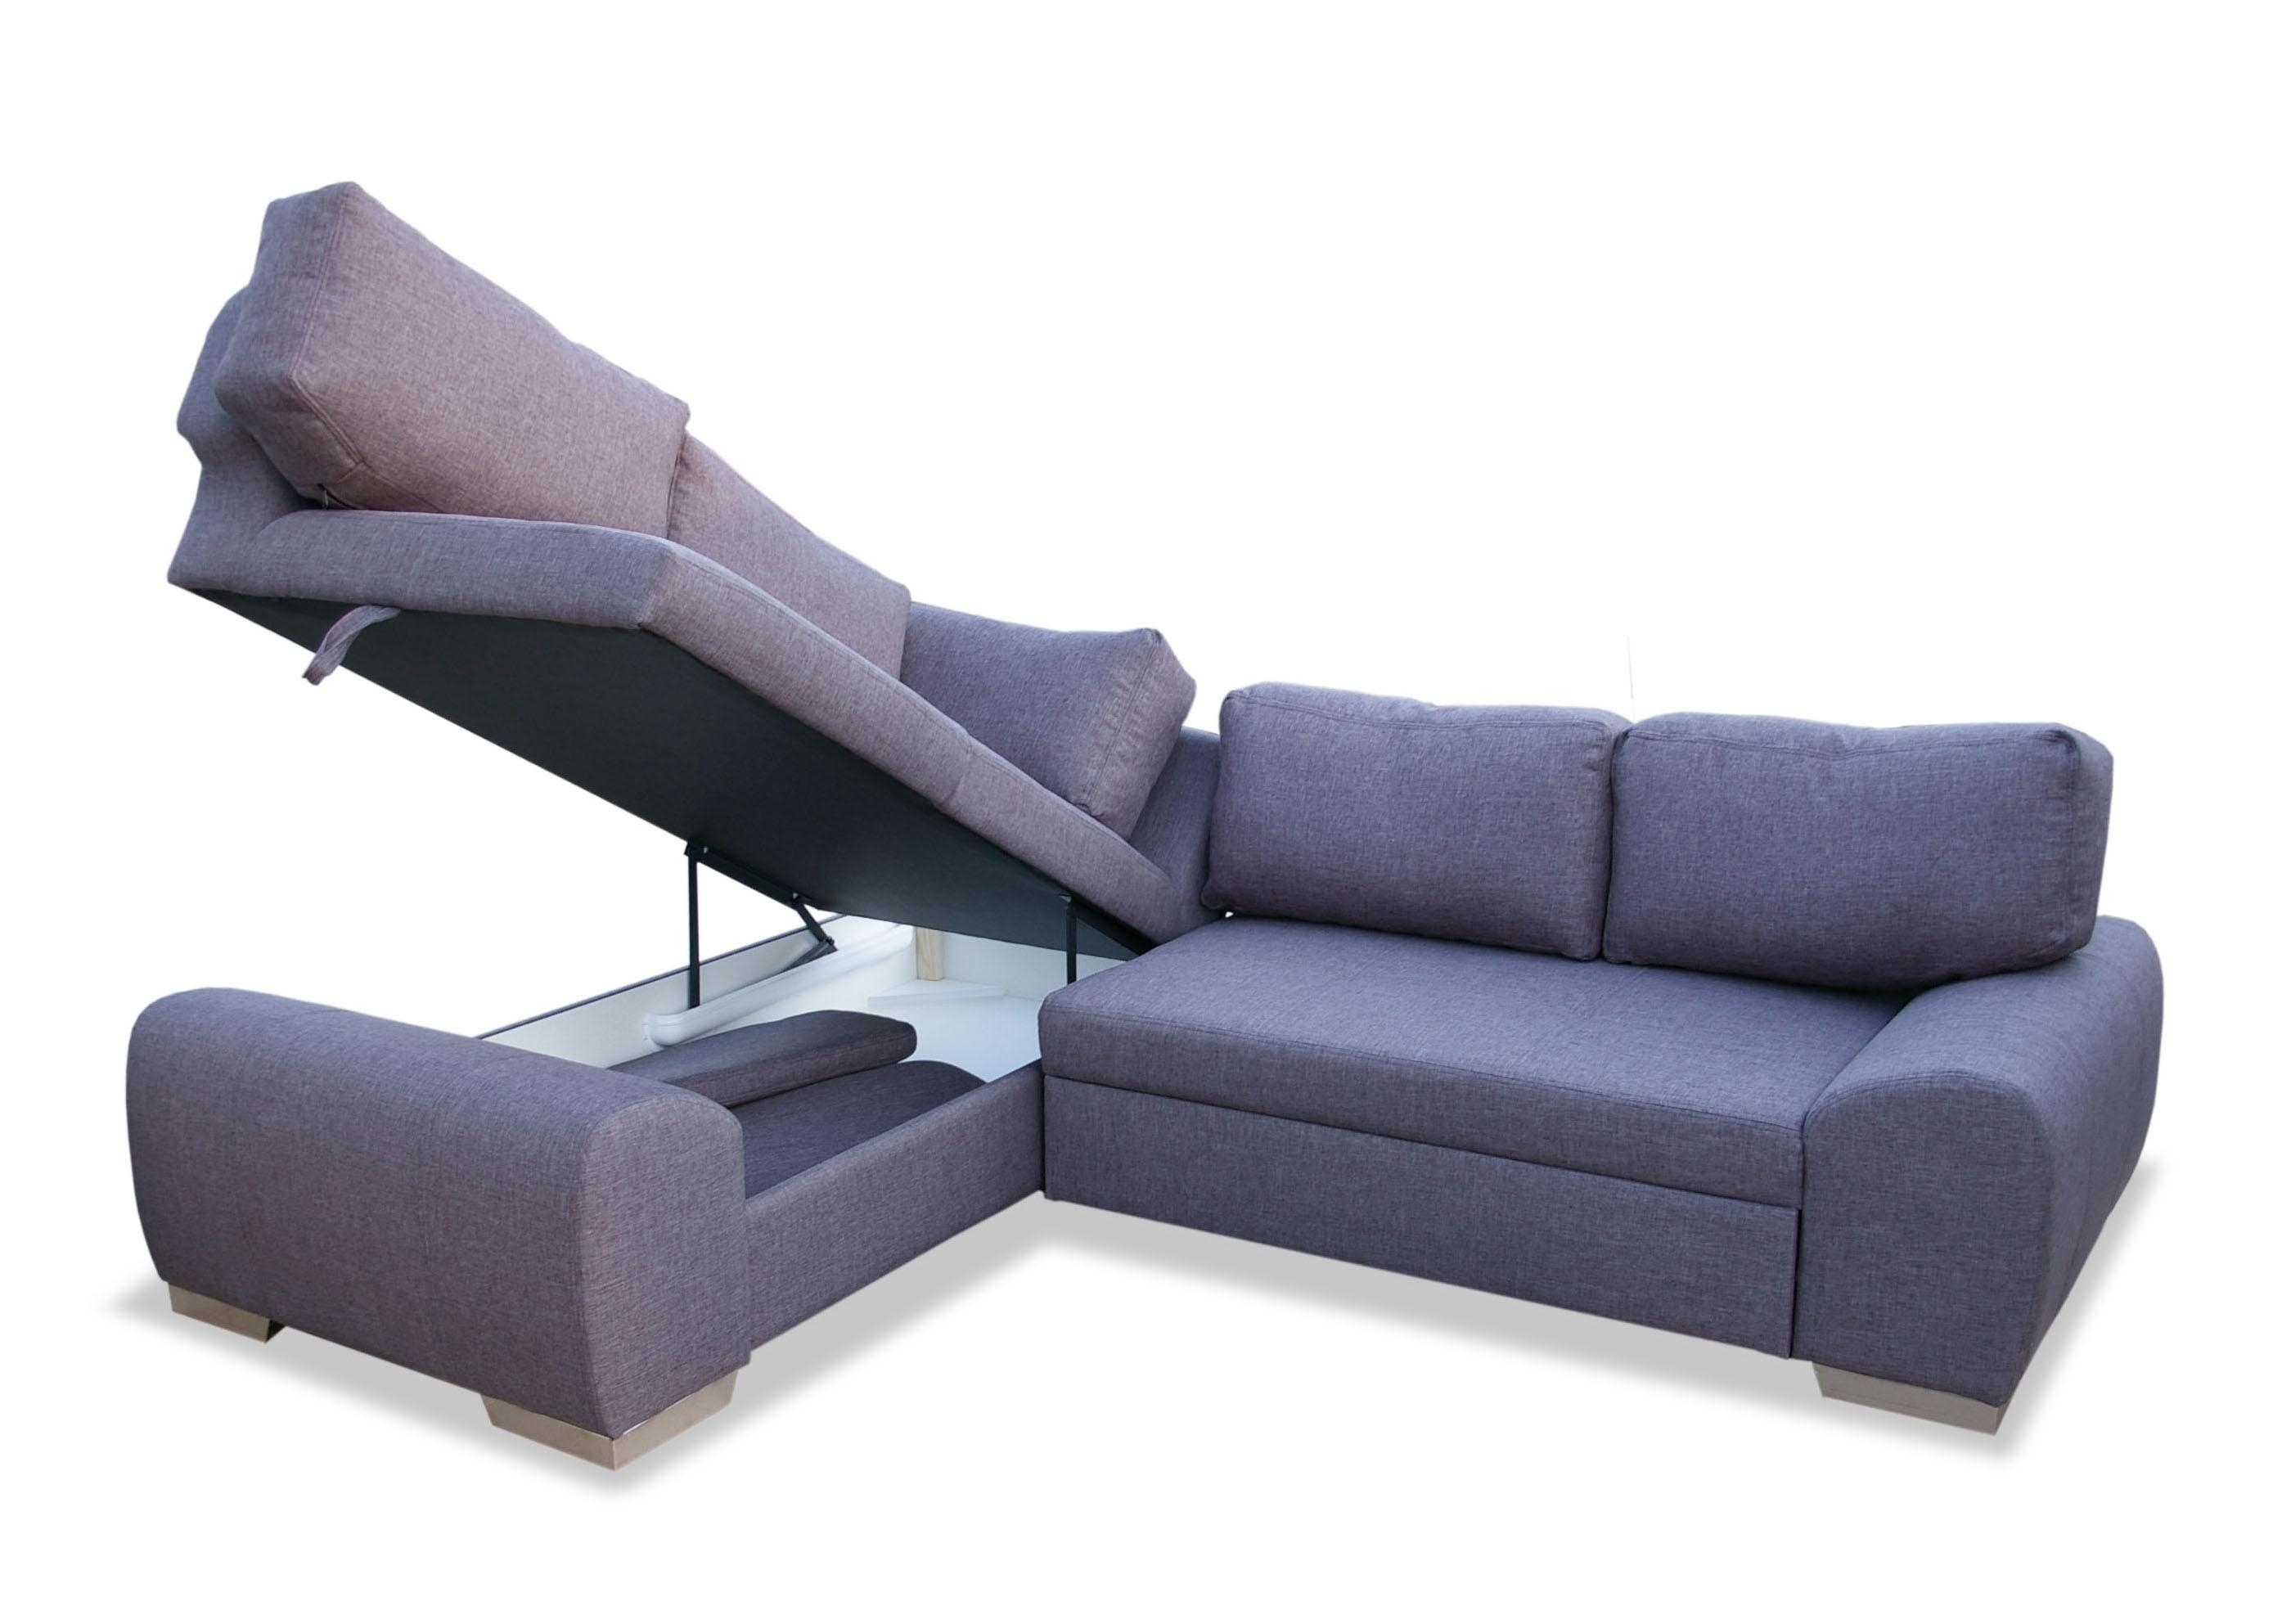 Sofa Bed Bar Shield | Sofa Gallery | Kengire Throughout Sofa Beds Bar Shield (Image 14 of 20)